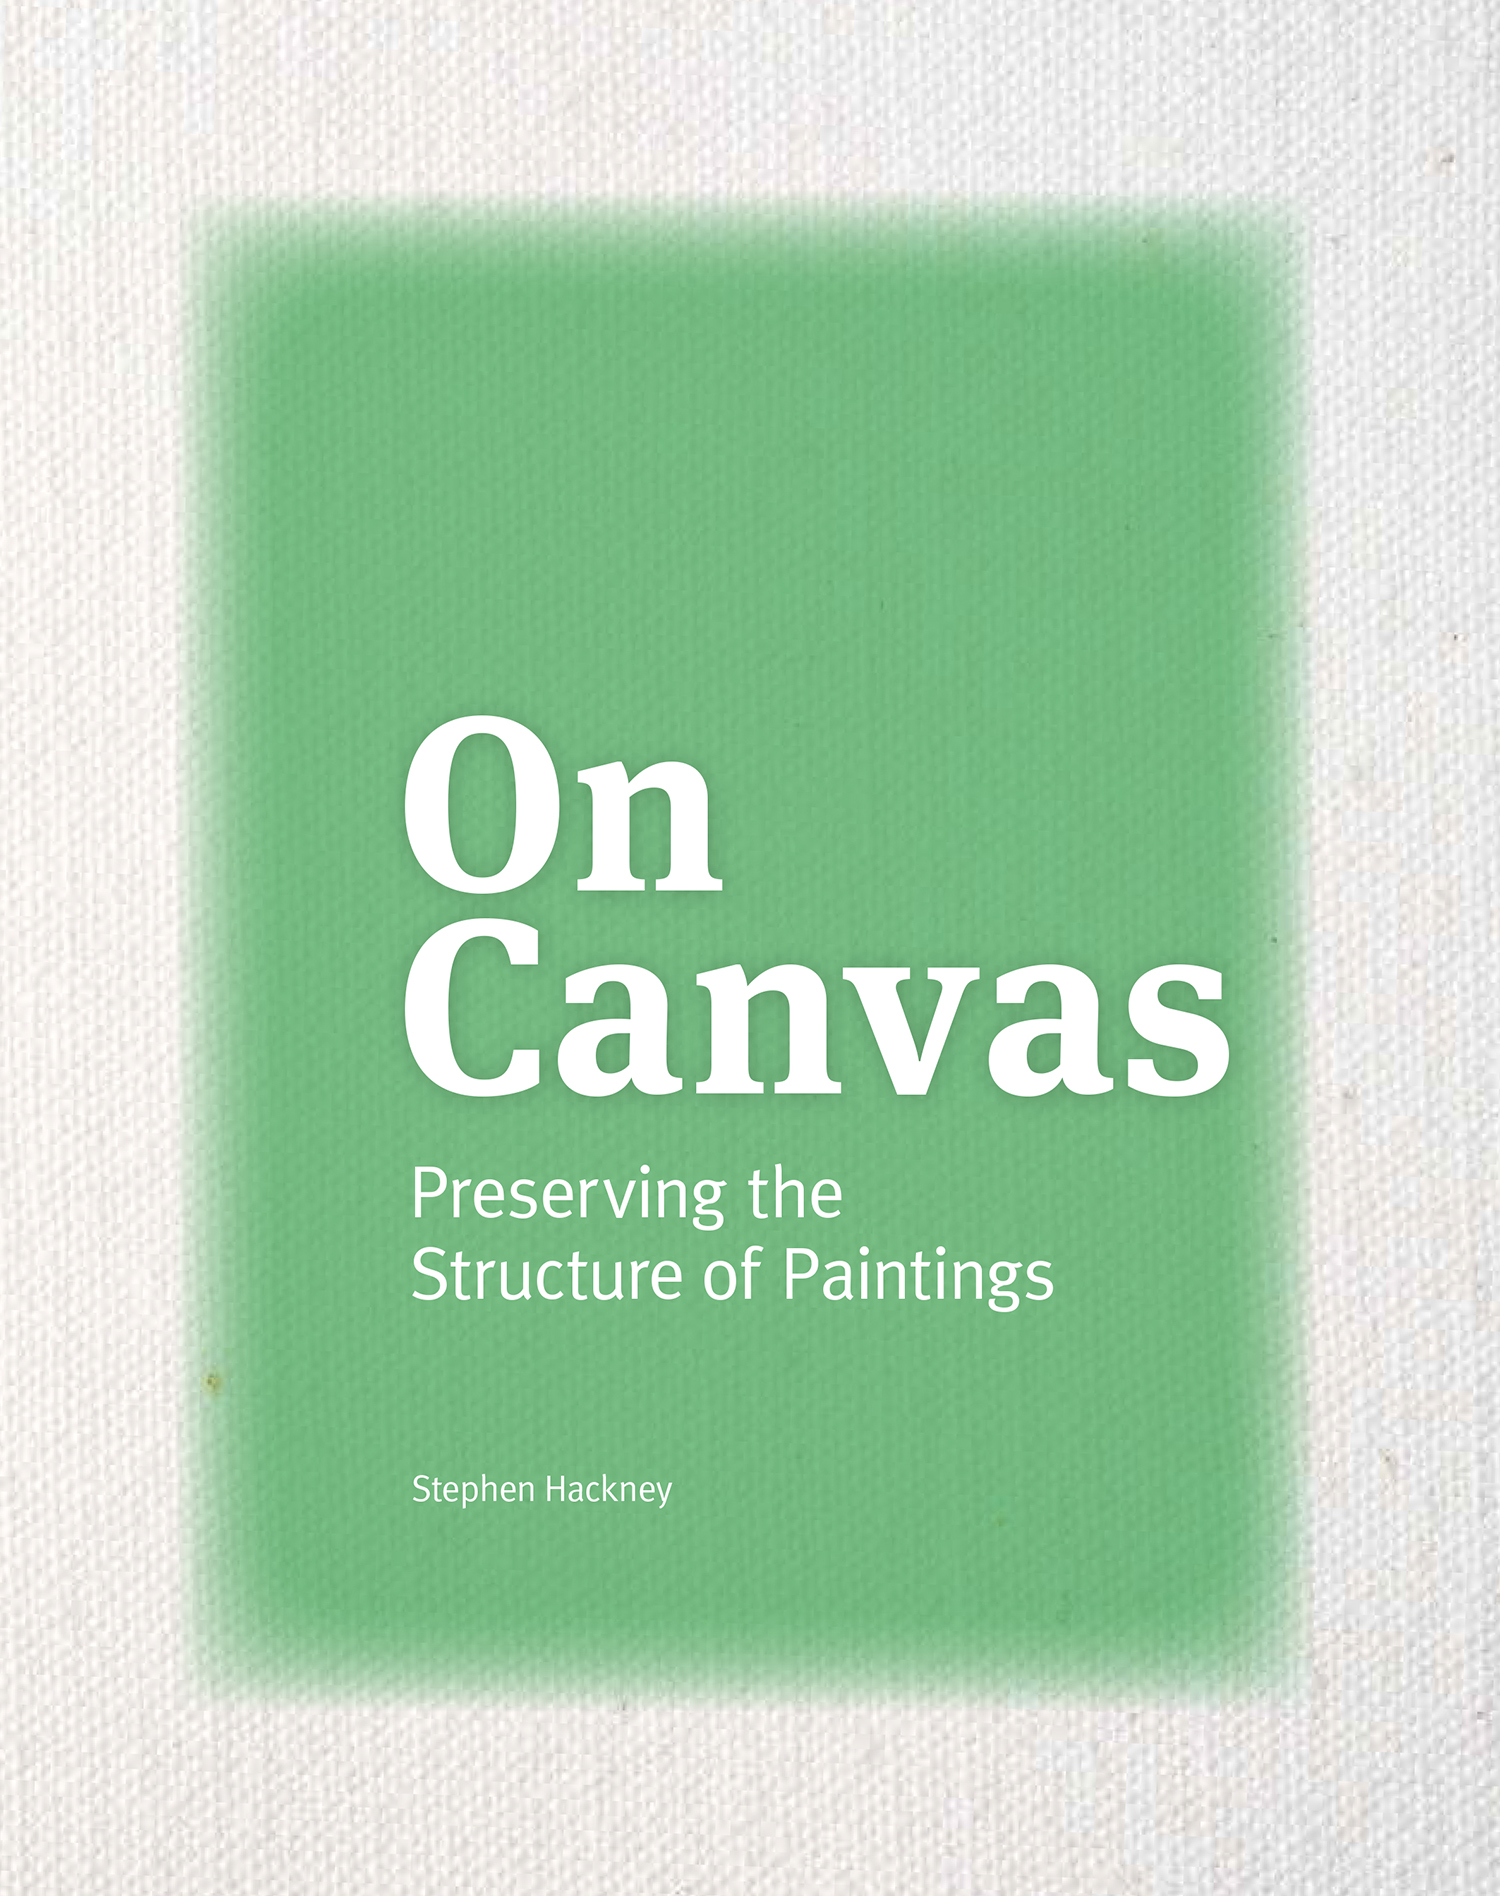 Front and back cover images of On Canvas courtesy of Getty Publications.